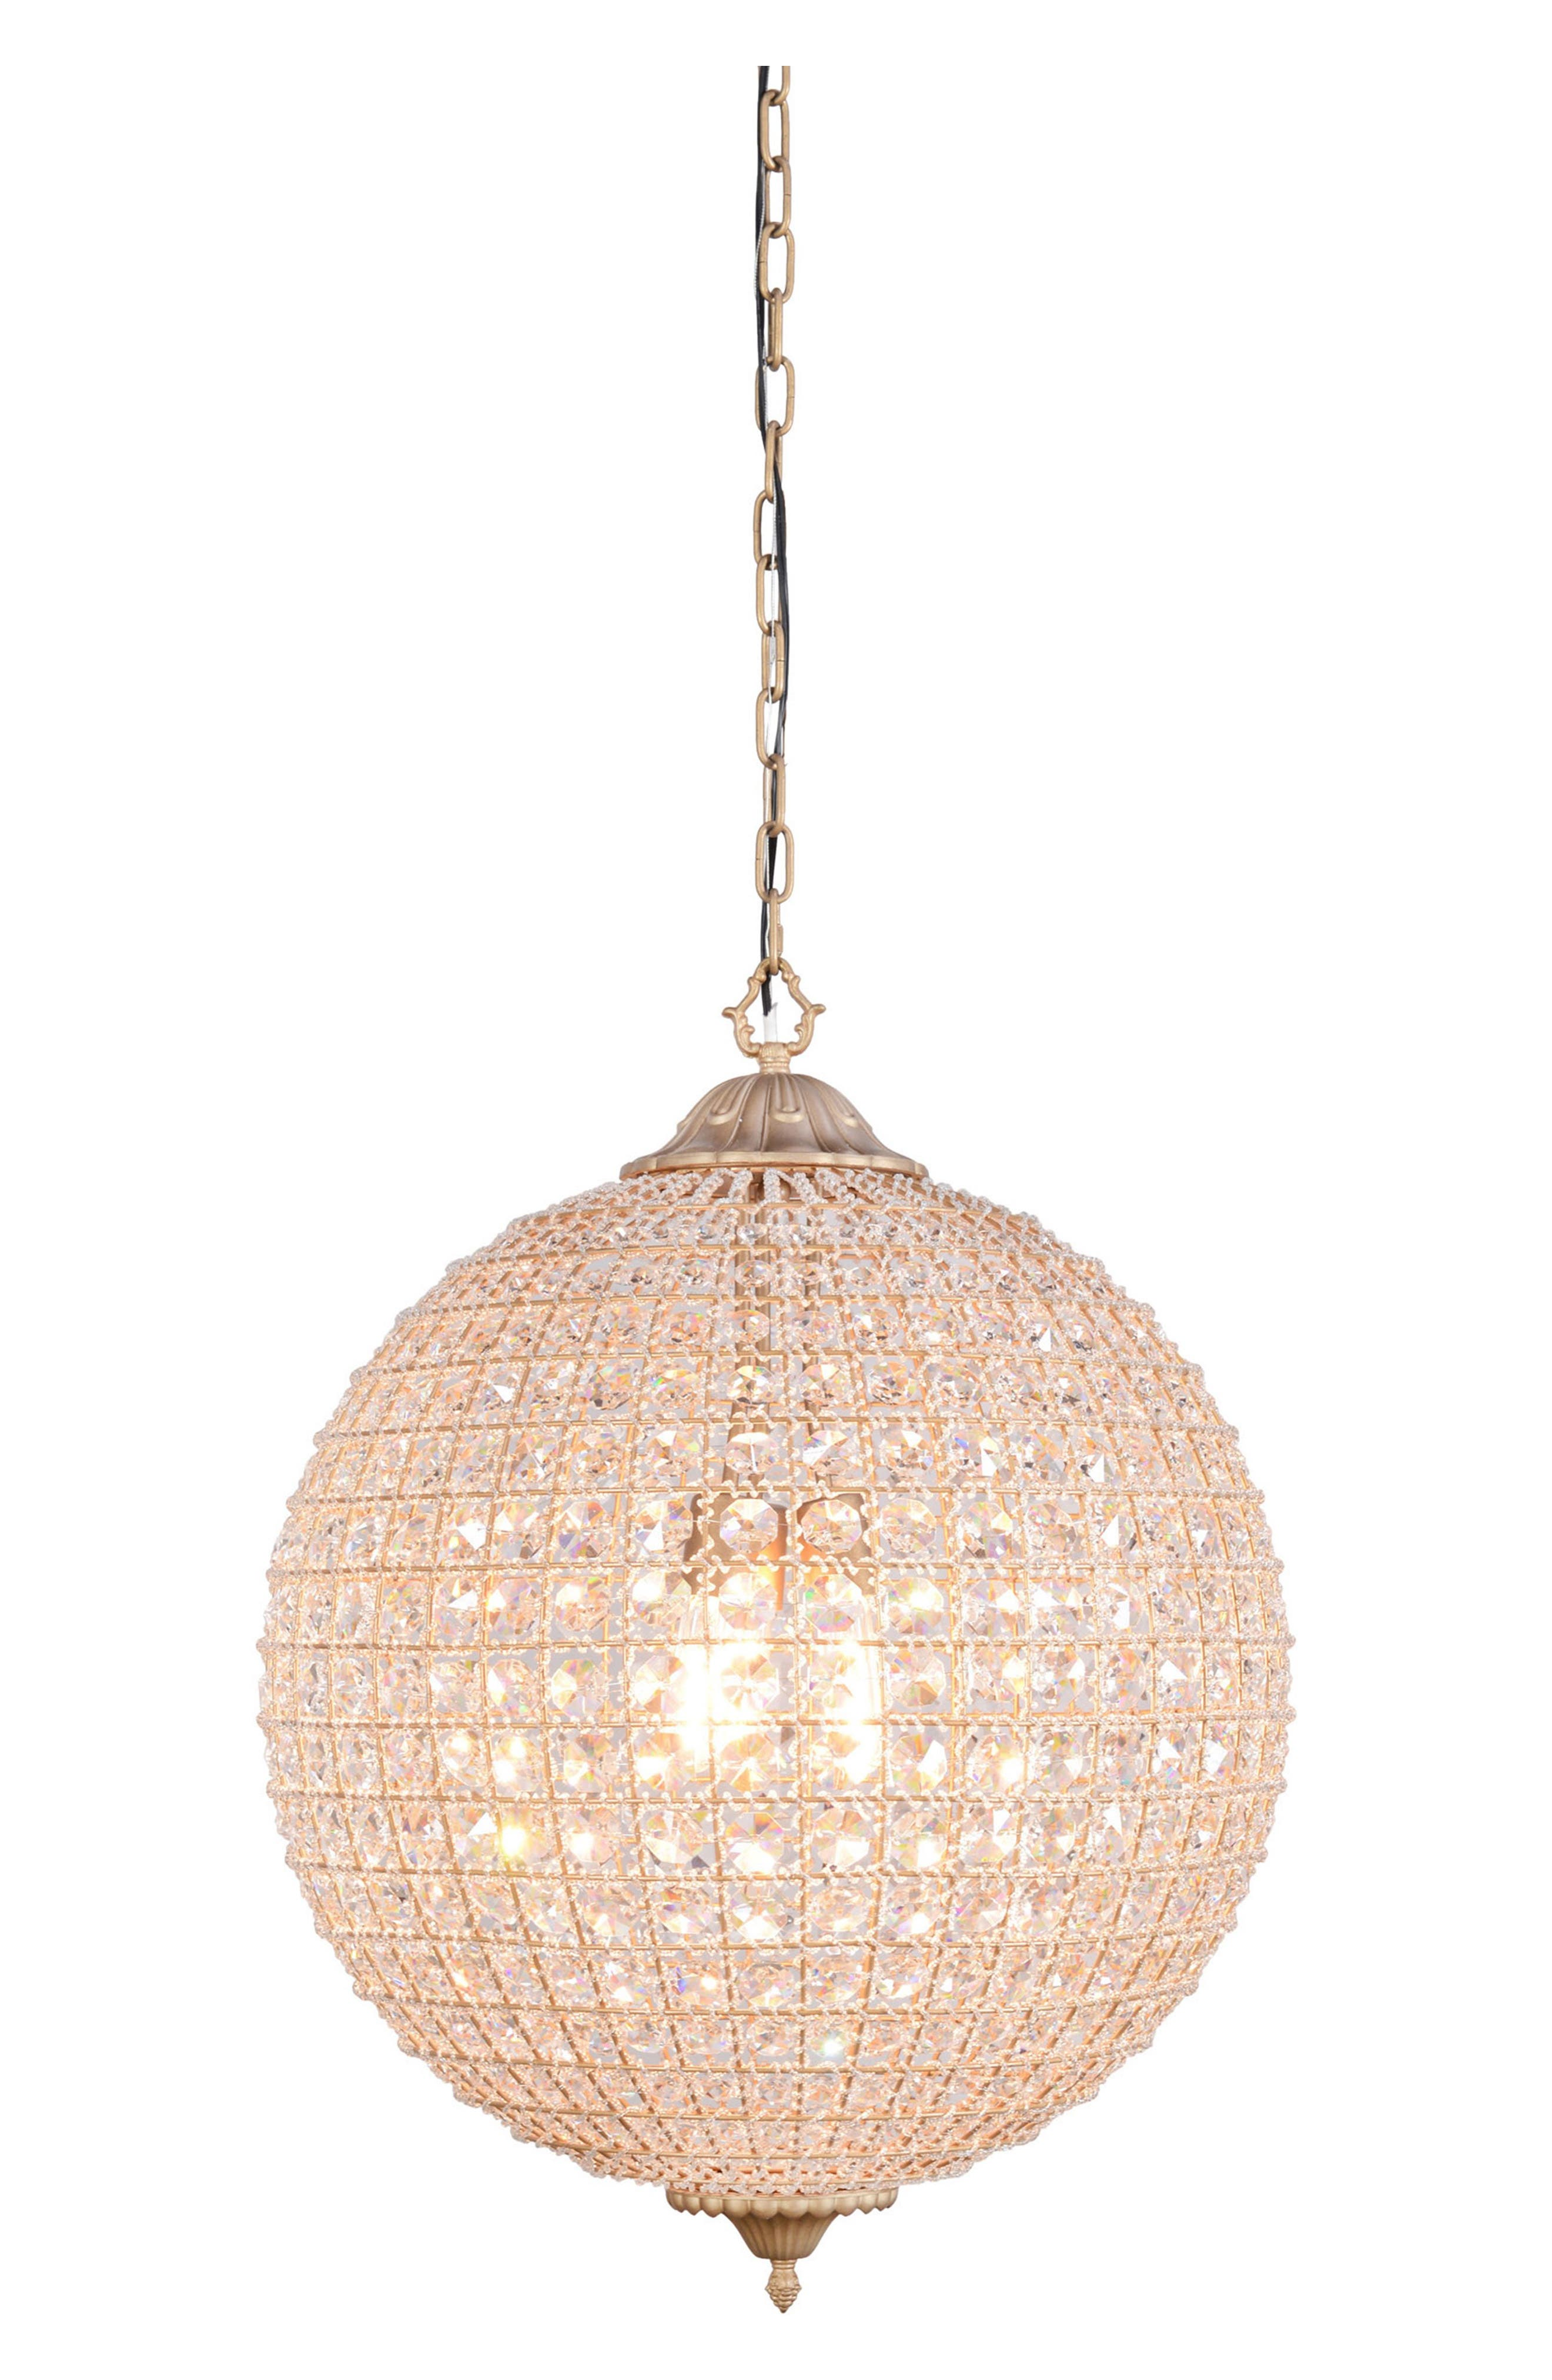 Cimberleigh Chandelier,                         Main,                         color, Brass With Crystals